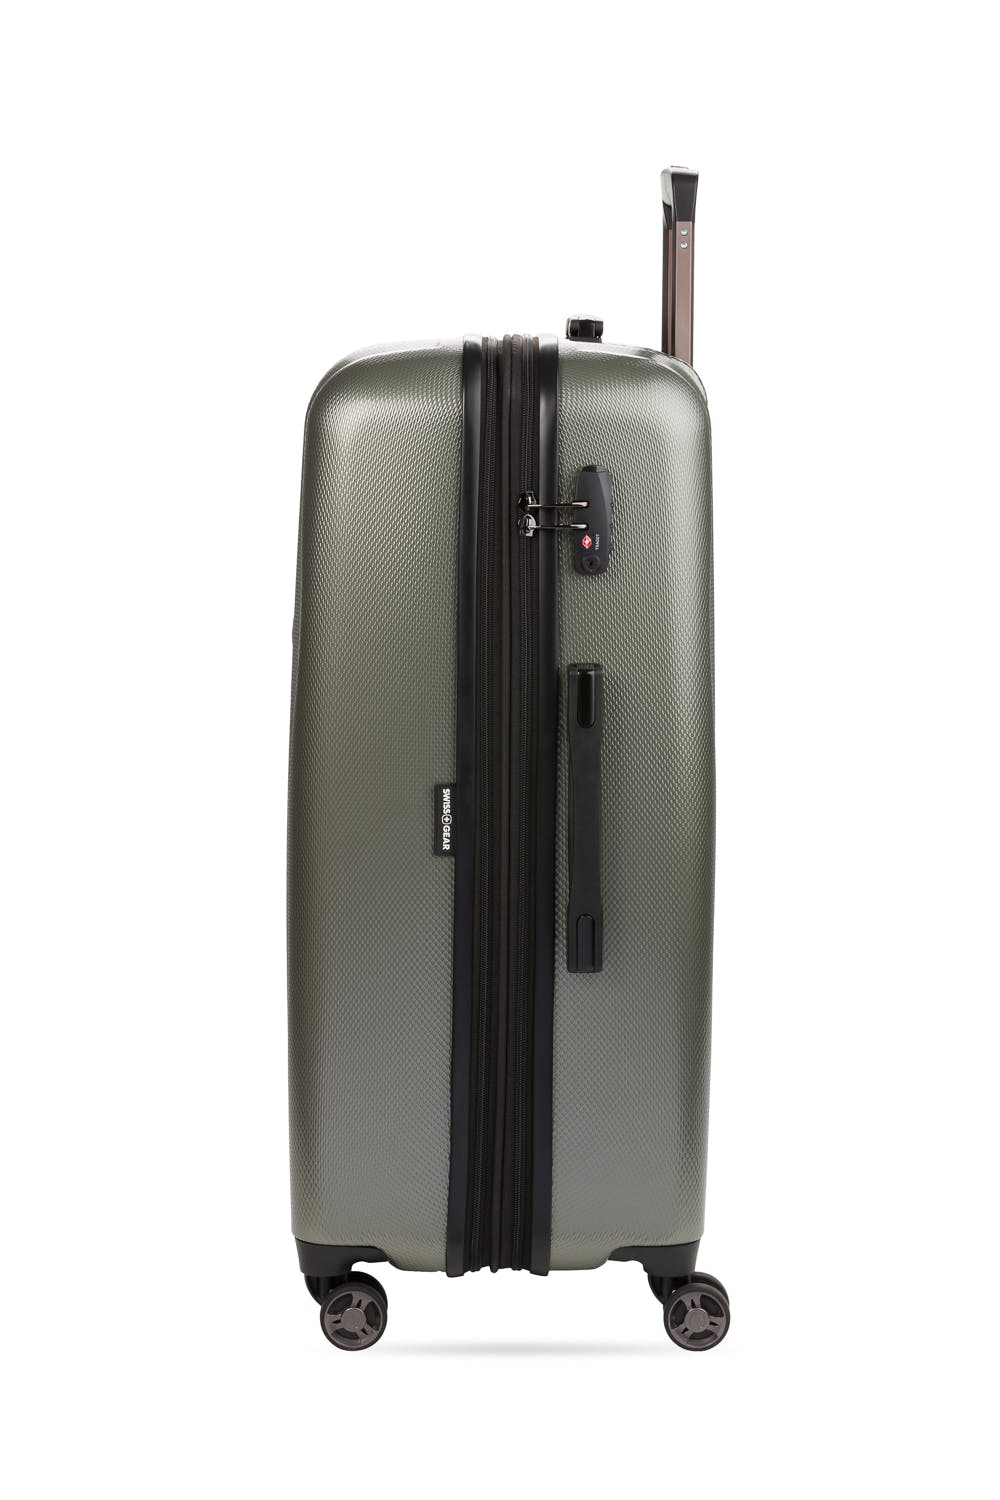 Swissgear 7272 27-Inch Expandable Luggage